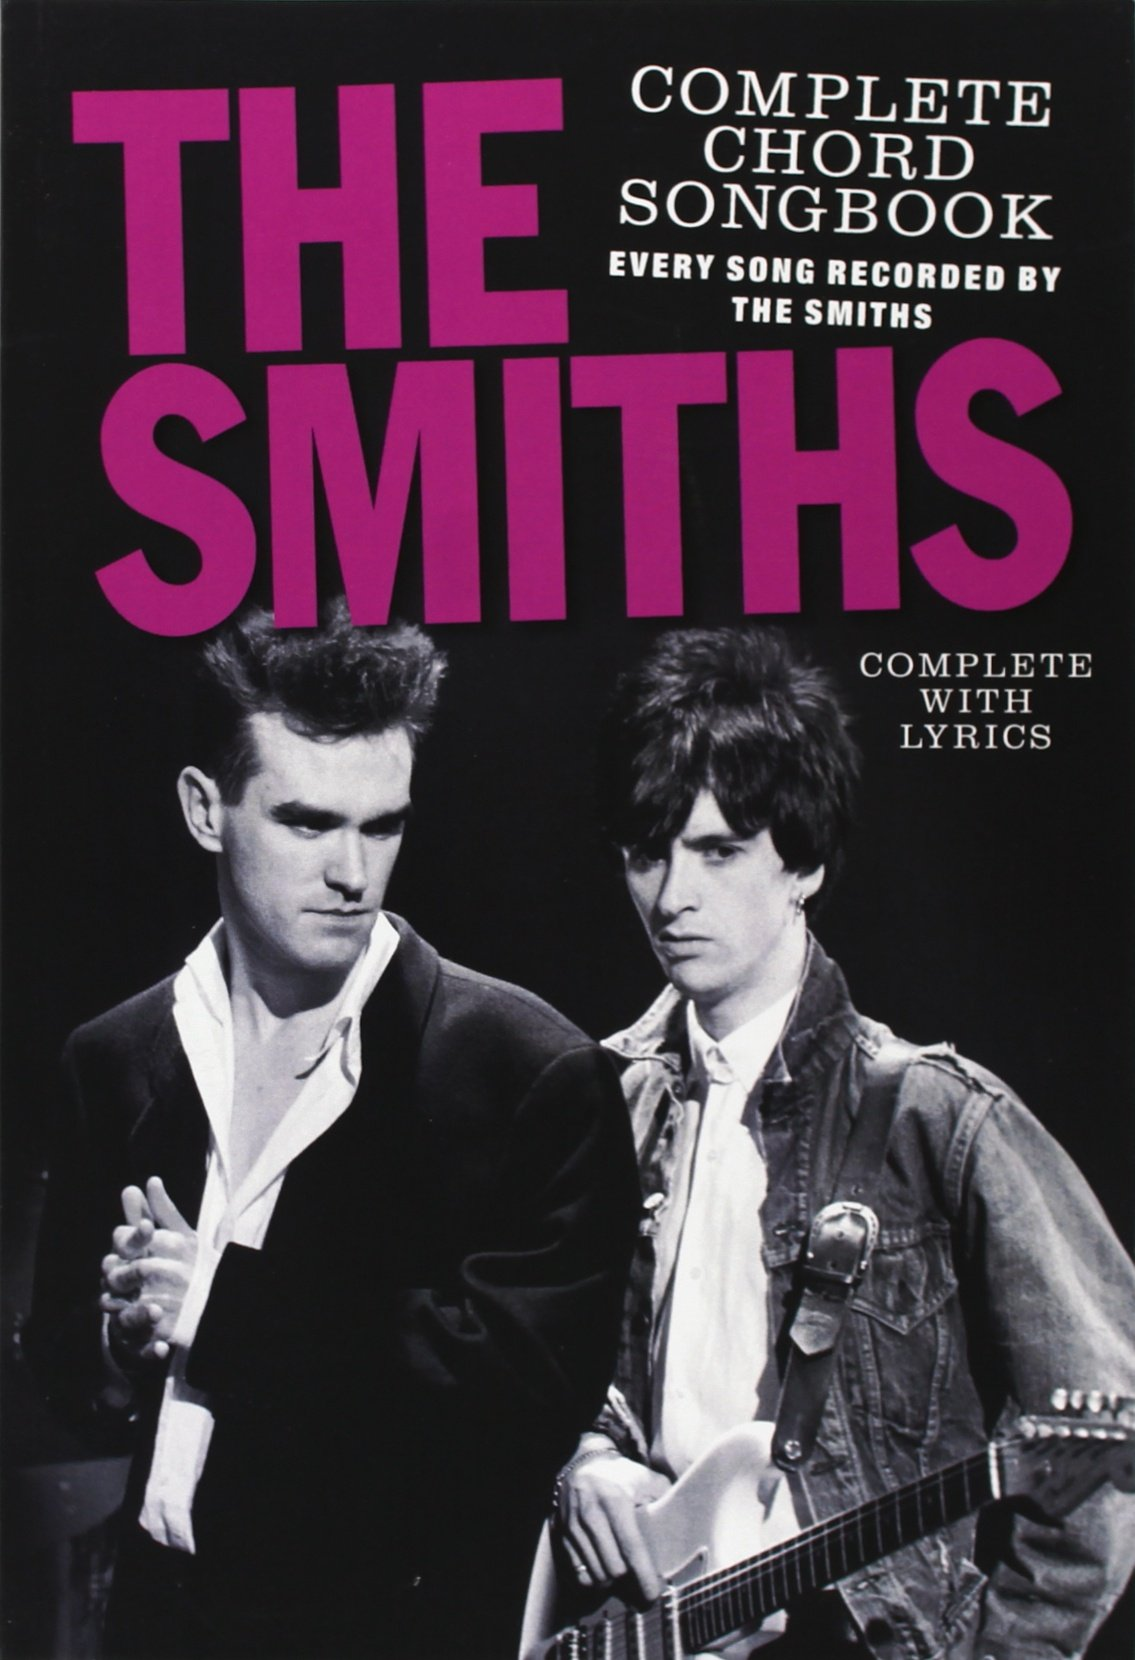 The Smiths Complete Chord Songbook (Every Song Recorded by The Smiths, Complete with Lyrics) pdf